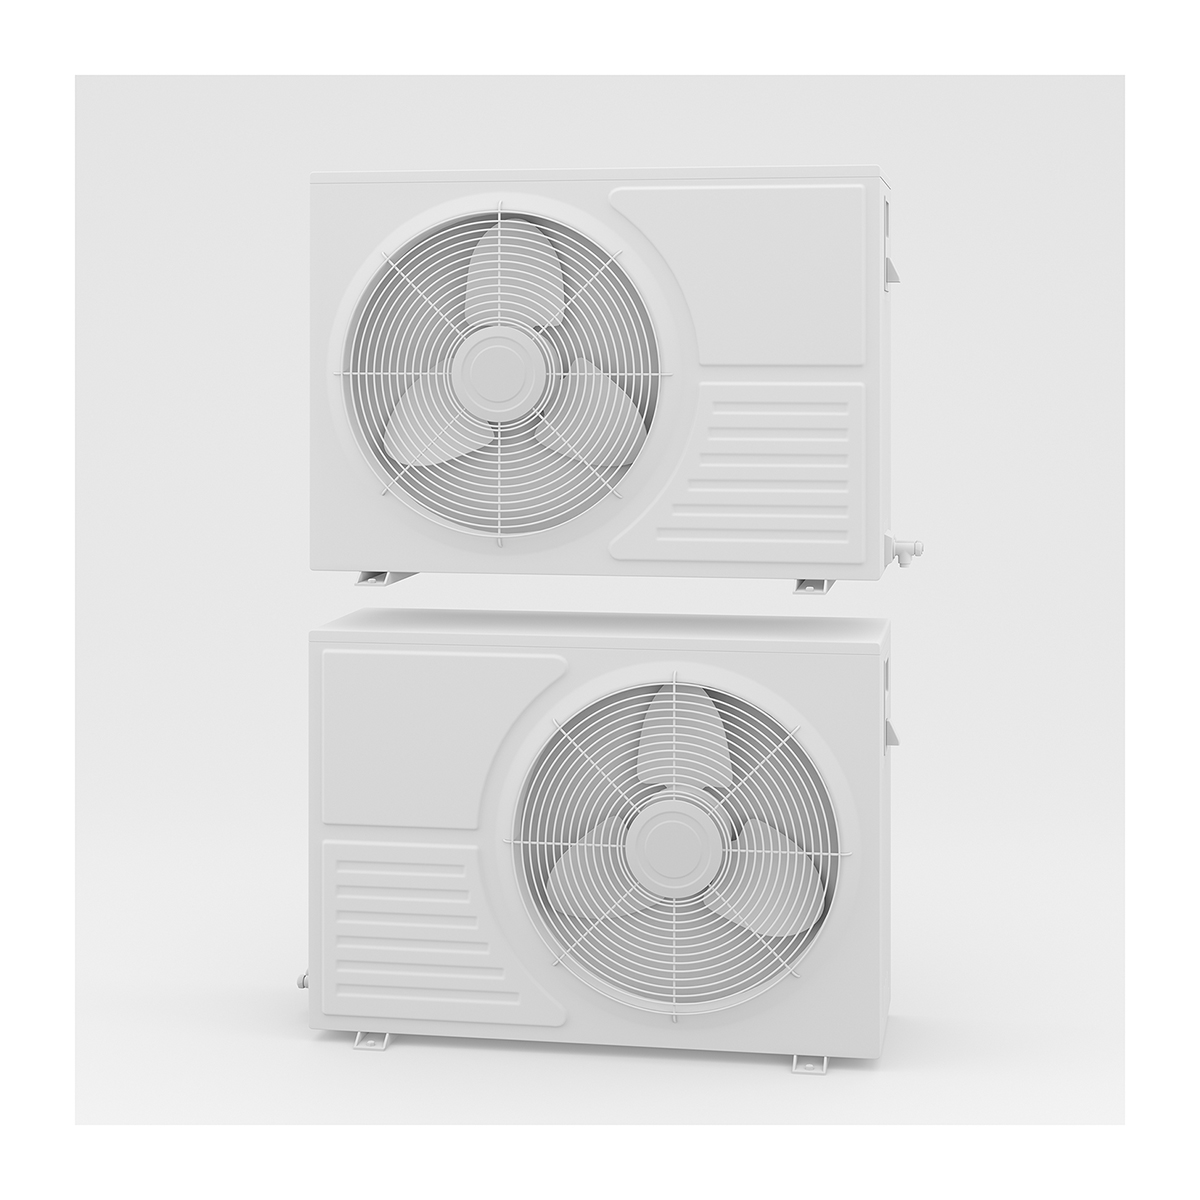 The Museum of HomoSapiens Objects that belonged to HomoSapiens XVIII 005 1 - 2020 - The Museum of HomoSapiens. Objects that belonged to HomoSapiens. XVIII. (Air Conditioners)